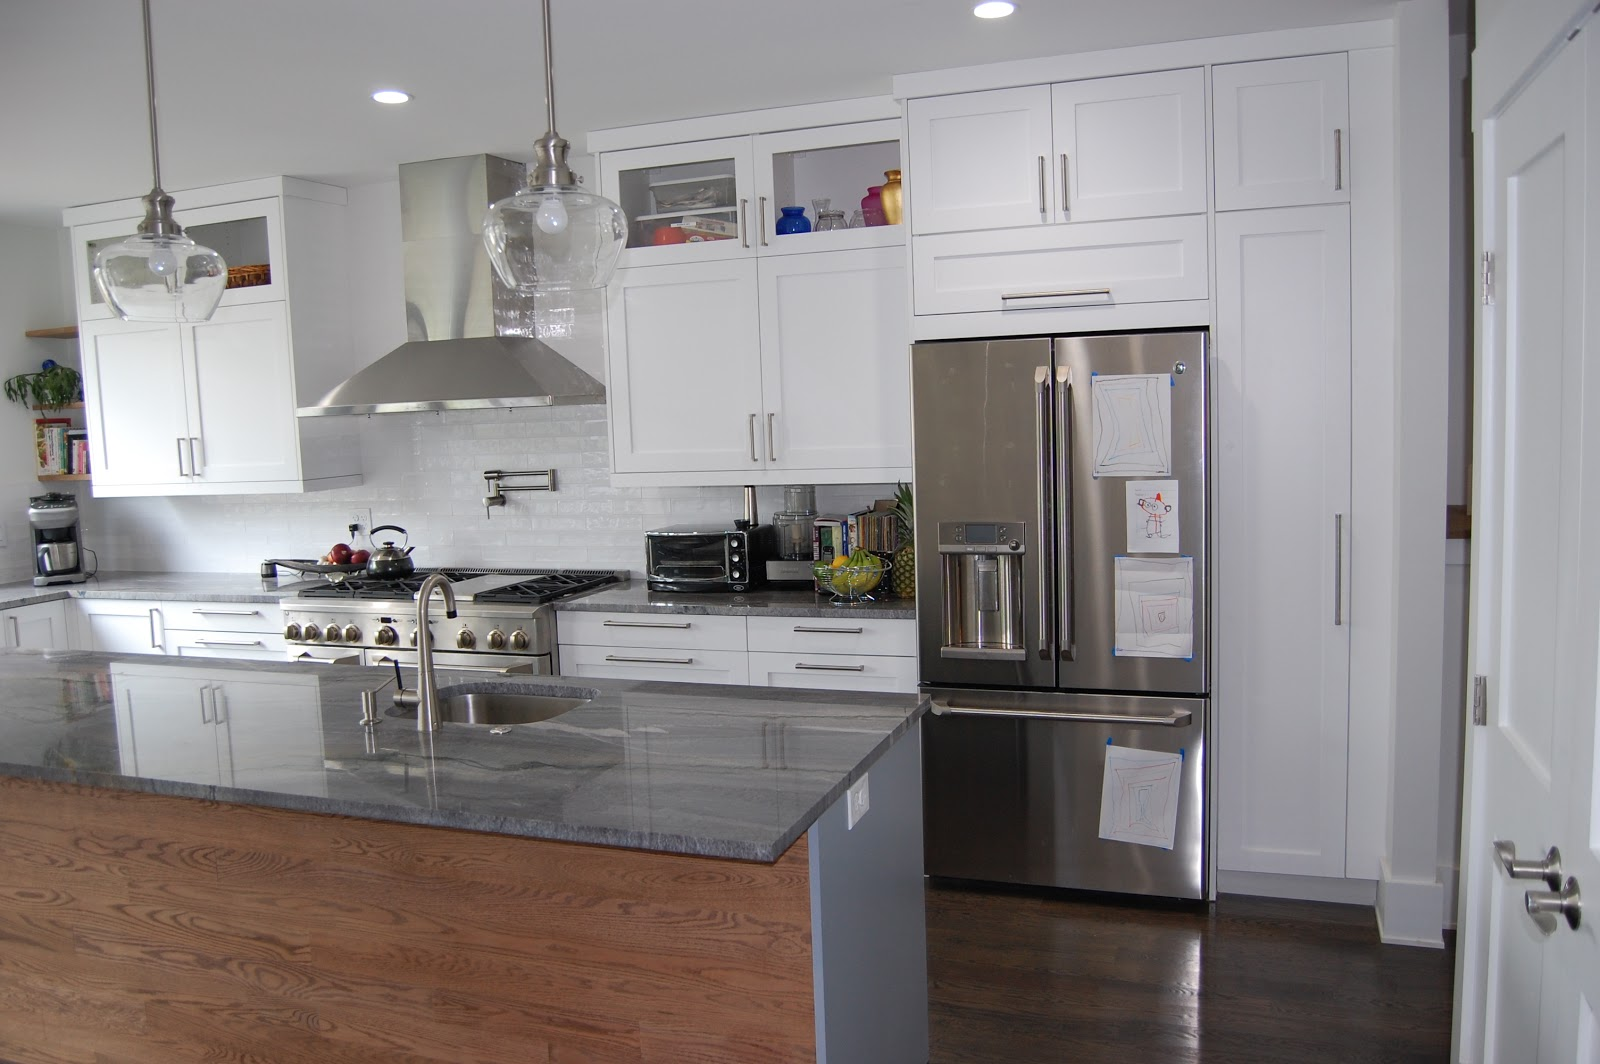 A Luxurious Ikea Kitchen Renovation 3 Important Lessons